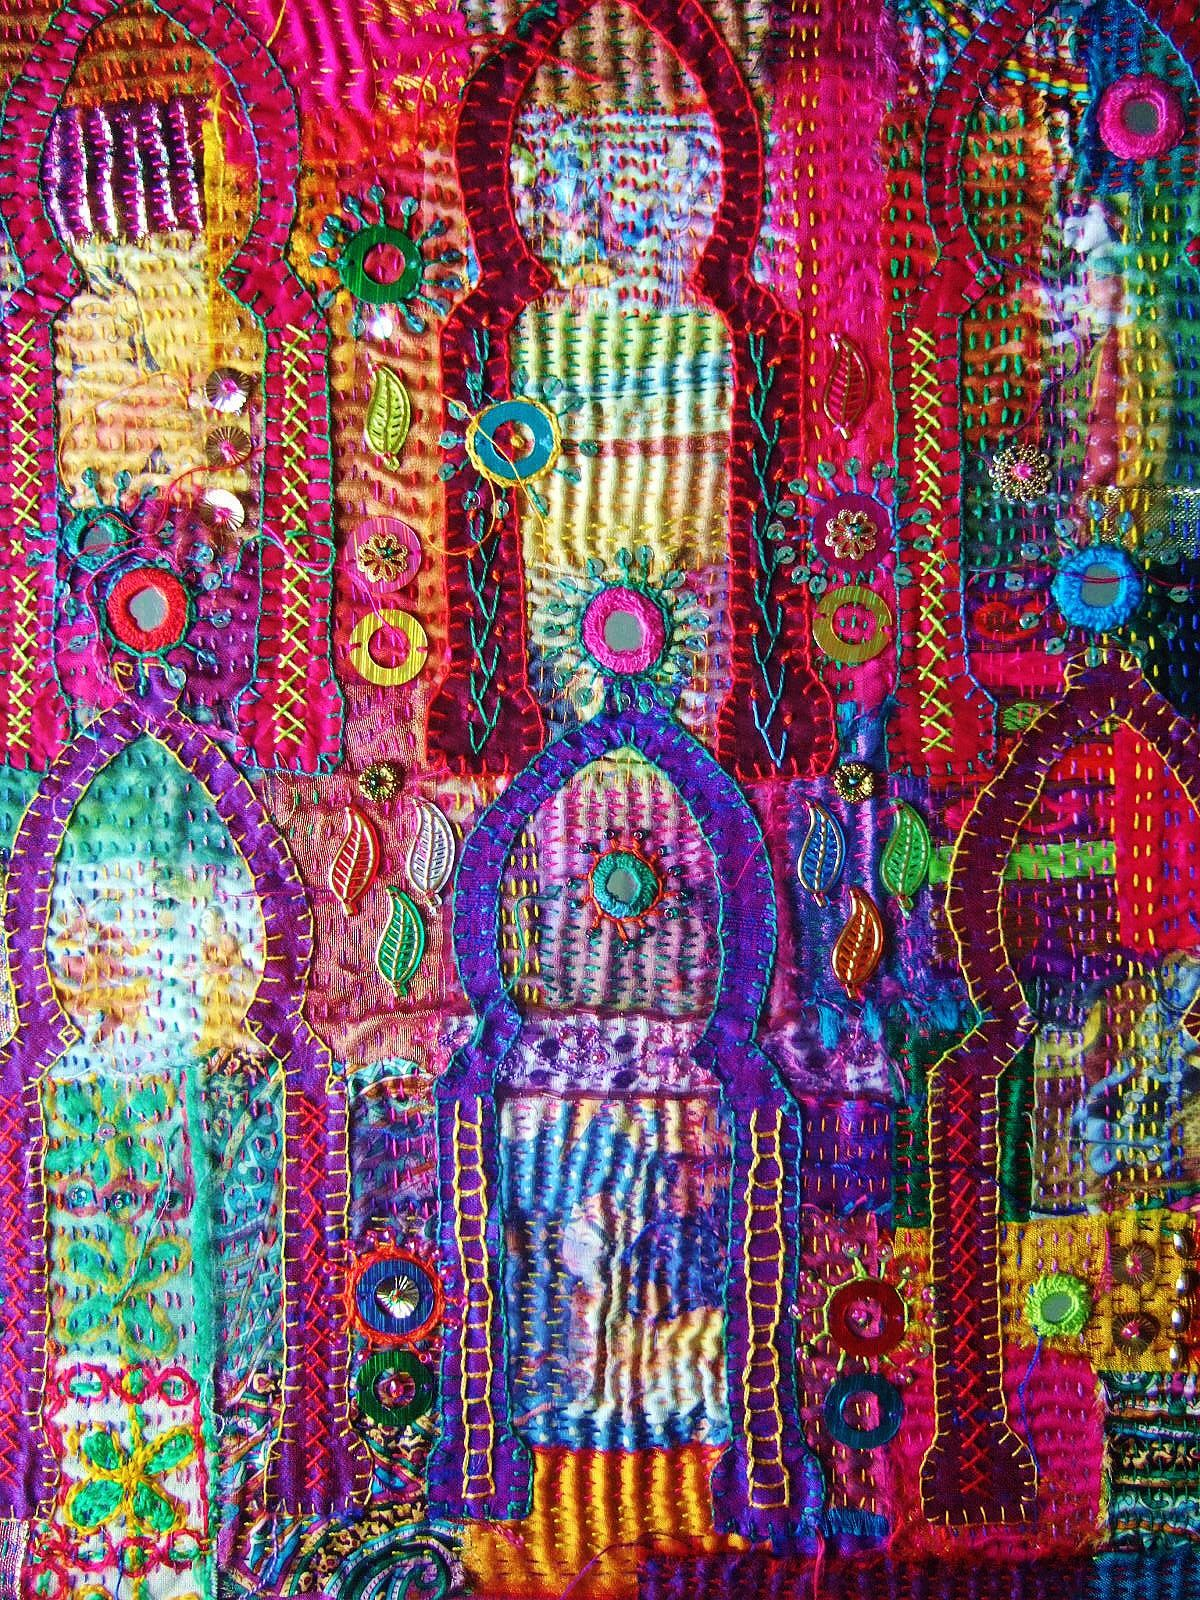 Detail of Indian inspired embroidery. Artist: Bronwyn Fleming